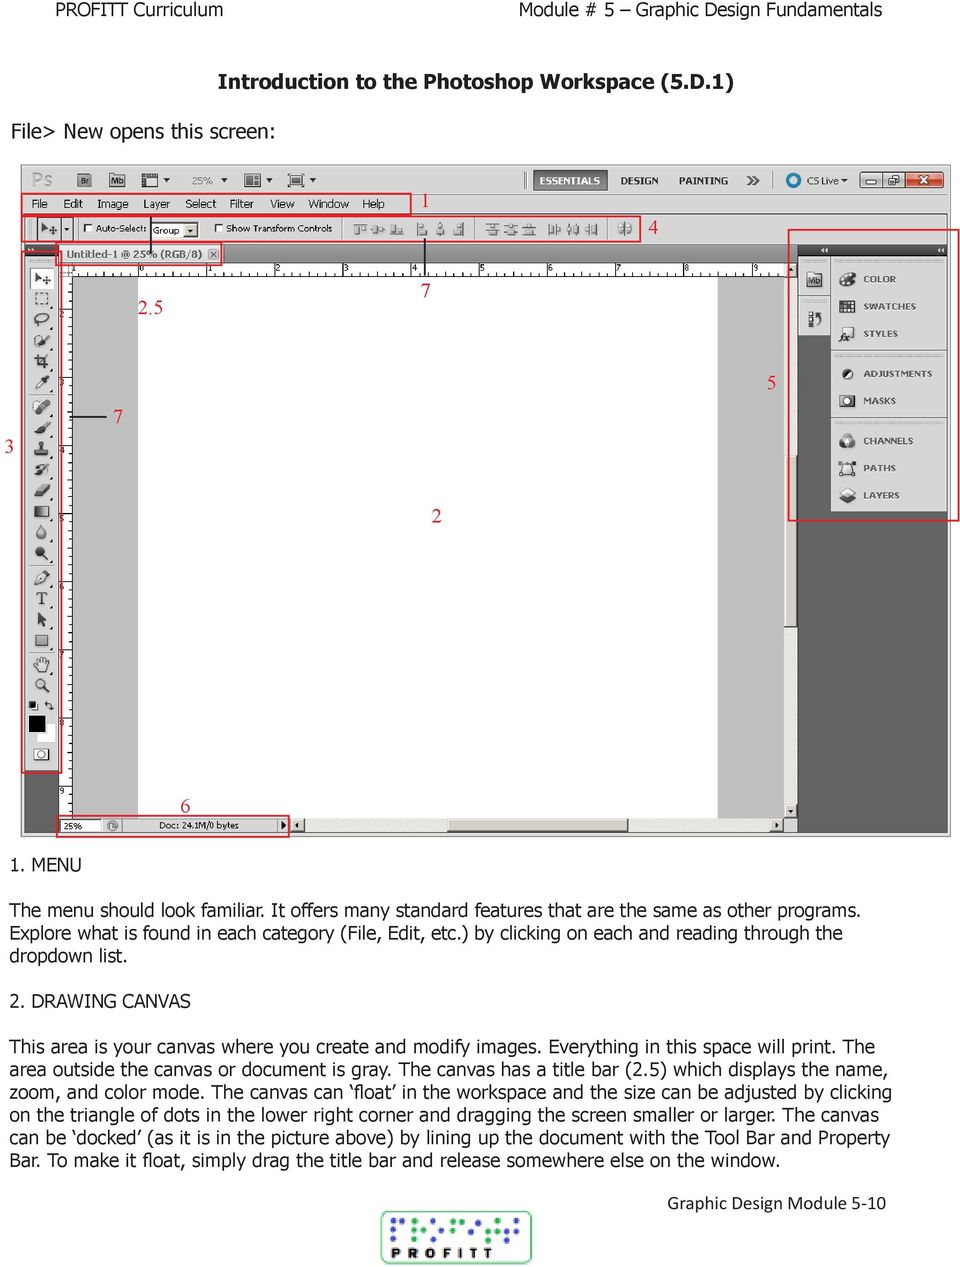 DRAWING CANVAS This area is your canvas where you create and modify images. Everything in this space will print. The area outside the canvas or document is gray. The canvas has a title bar (2.